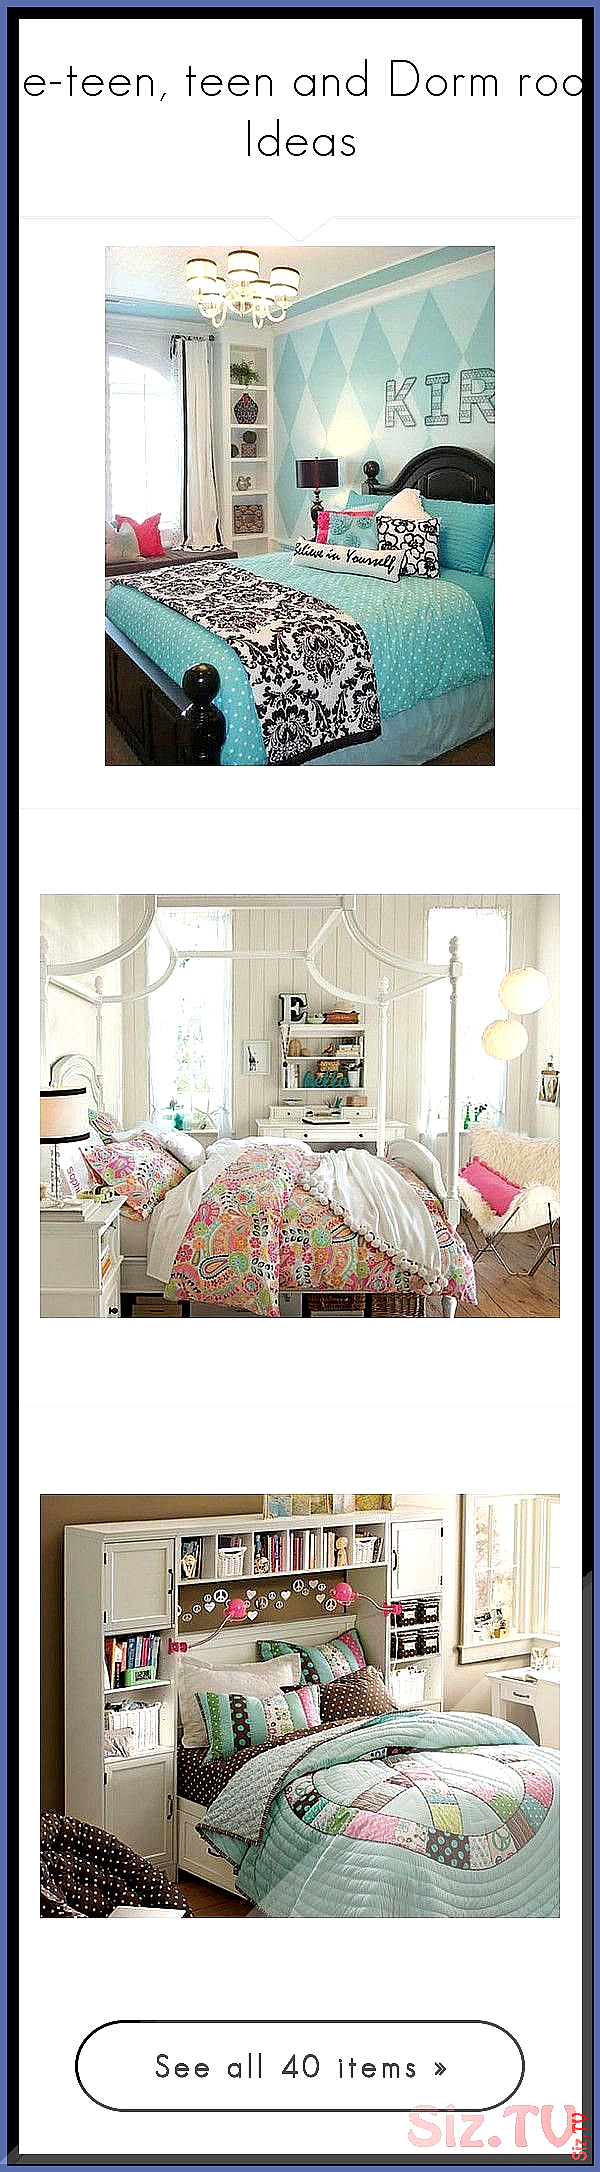 Pre-teen teen and Dorm room Ideasby caitlin-rosling liked on Polyvore featuring home home decor bedroom house wall art orange wall art o Pre-teen te  Pre-teen teen and Dorm room Ideasby caitlin-rosling liked on Polyvore featuring home home decor bedroom house wall art orange wall art o Pre-teen te  Preteen Preteen Pre-teen teen and Dorm room Ideasby caitlin-rosling liked on Polyvore featuring home home decor bedroom hou #bedroom #caitlinrosling #decor #featuring #house #ideasby #orange #polyvore #teenroomdecor